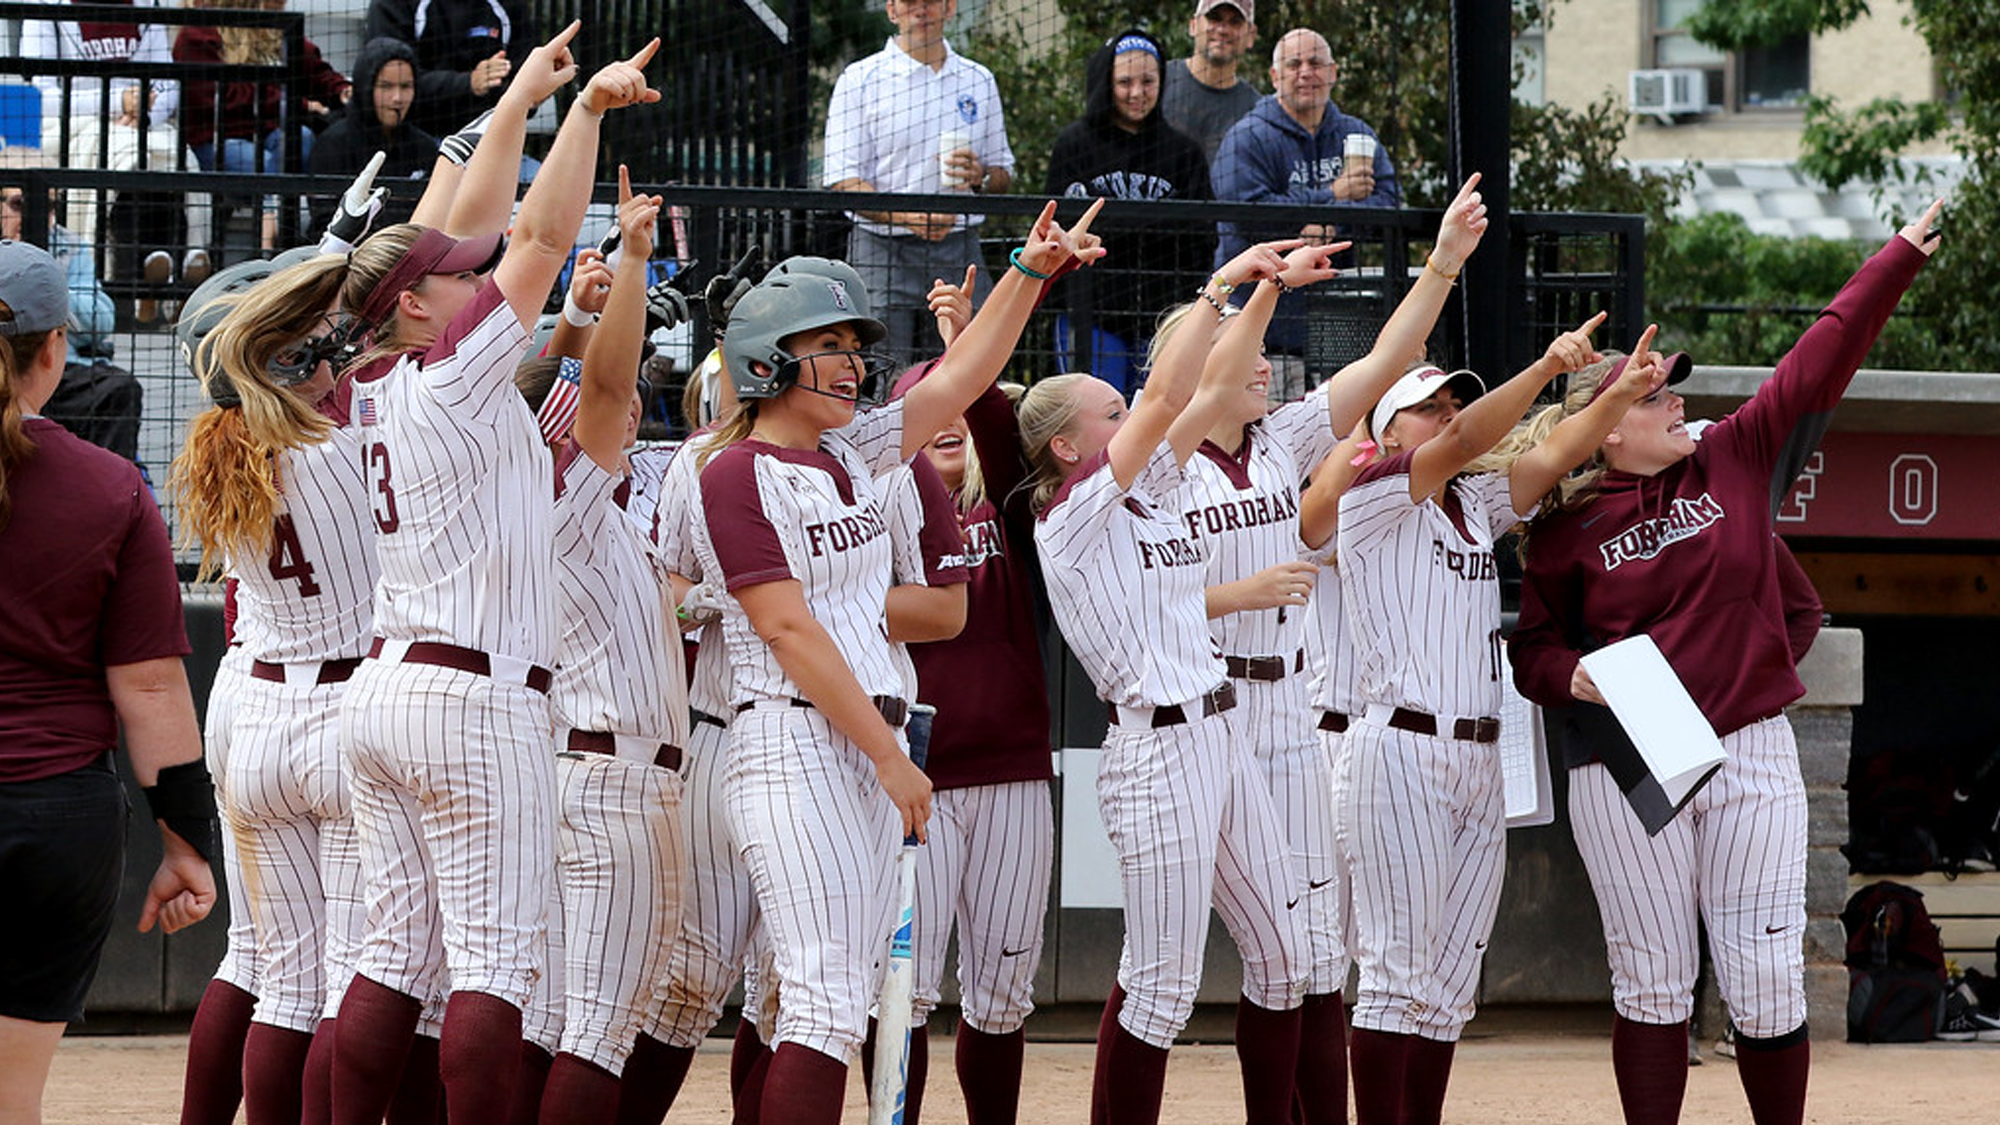 The softball team does their traditional home run celebration (Courtesy of Fordham Athletics).